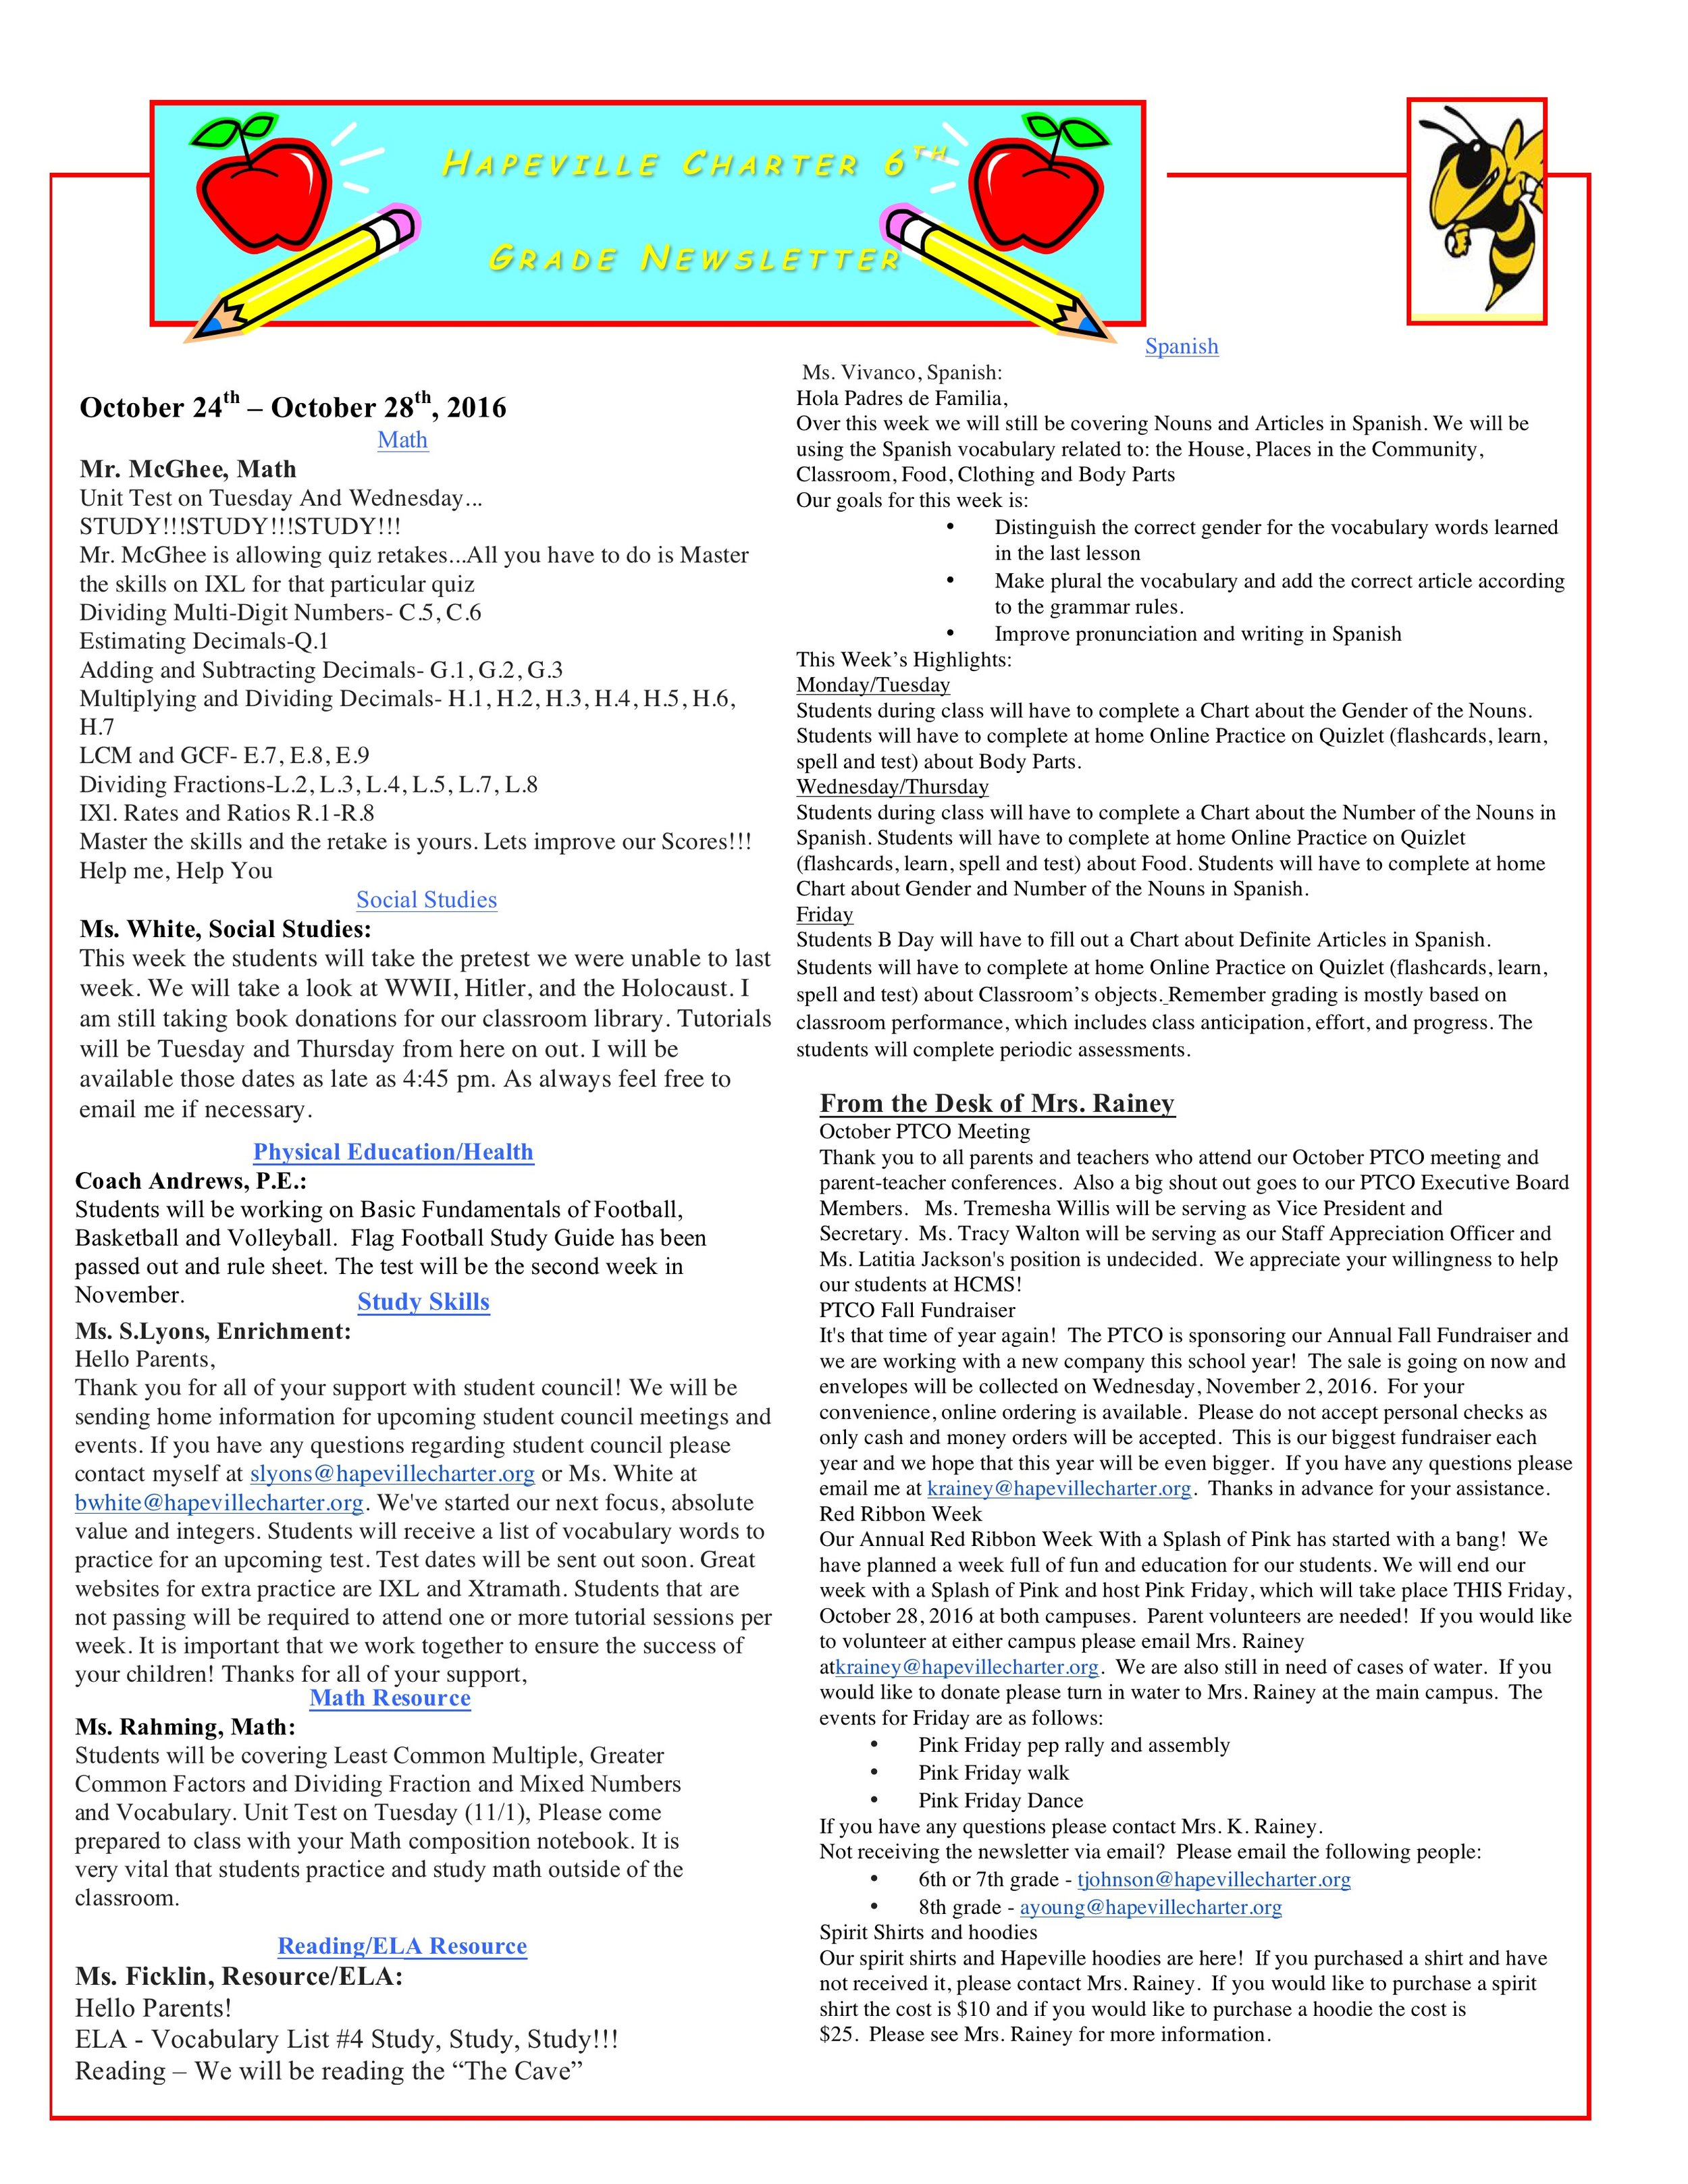 Newsletter Image6th Grade Newsletter 10-24.jpeg